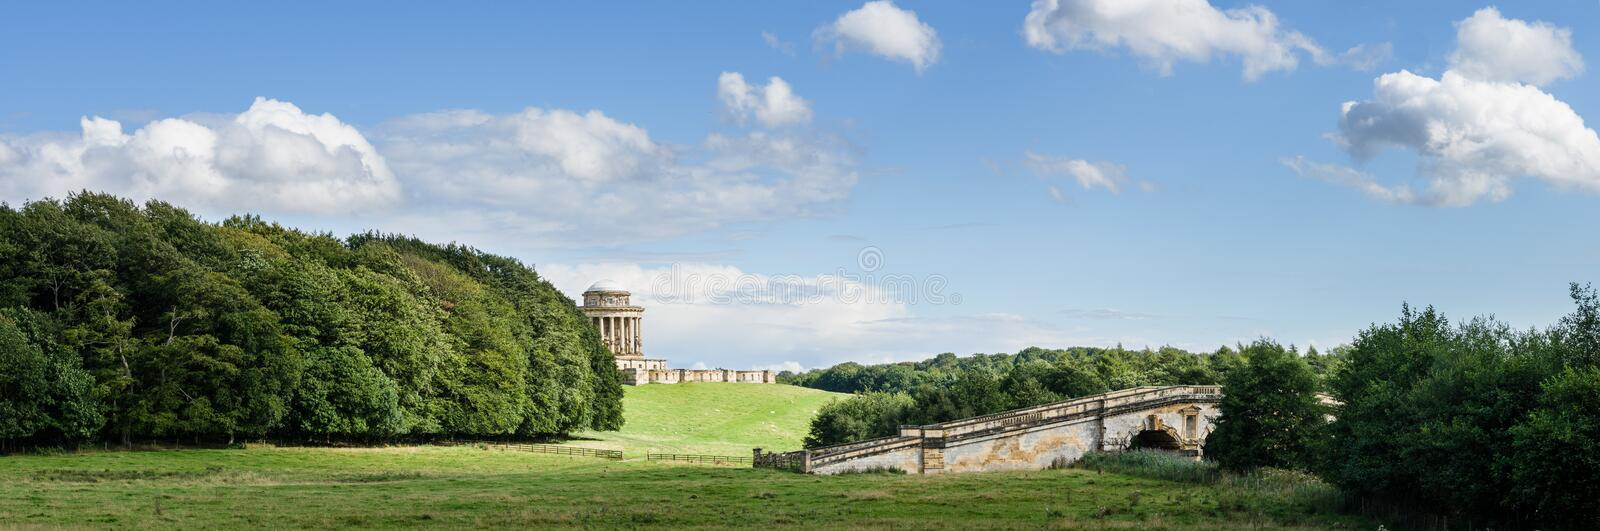 Mausoleum and New River Bridge - Castle Howard - North Yorkshire - UK. The Mausoleum and New River Bridge on a hot summers day, Castle Howard, North Yorkshire stock photography